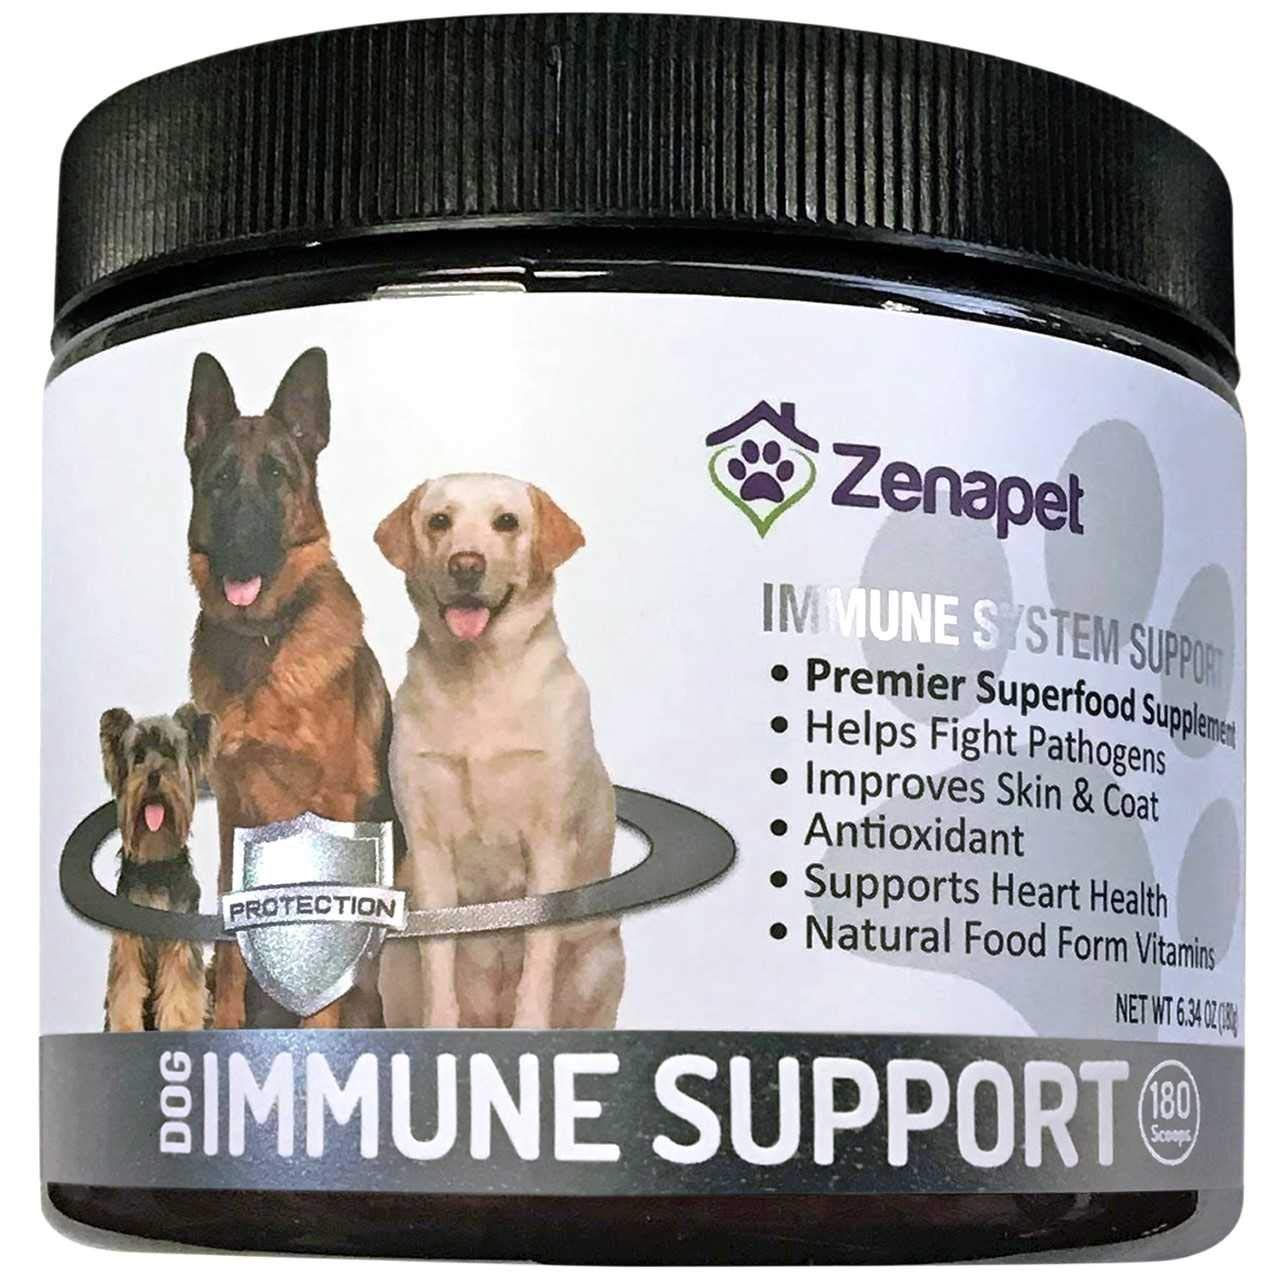 Zenapet Dog Immune Support-Immune Booster for Dogs-Safeguard Your Dog's Immune System-Premier Superfood Supplement for Your Pet-Natural Vitamins for Dogs in Food Form with Antioxidant Support by Zenapet